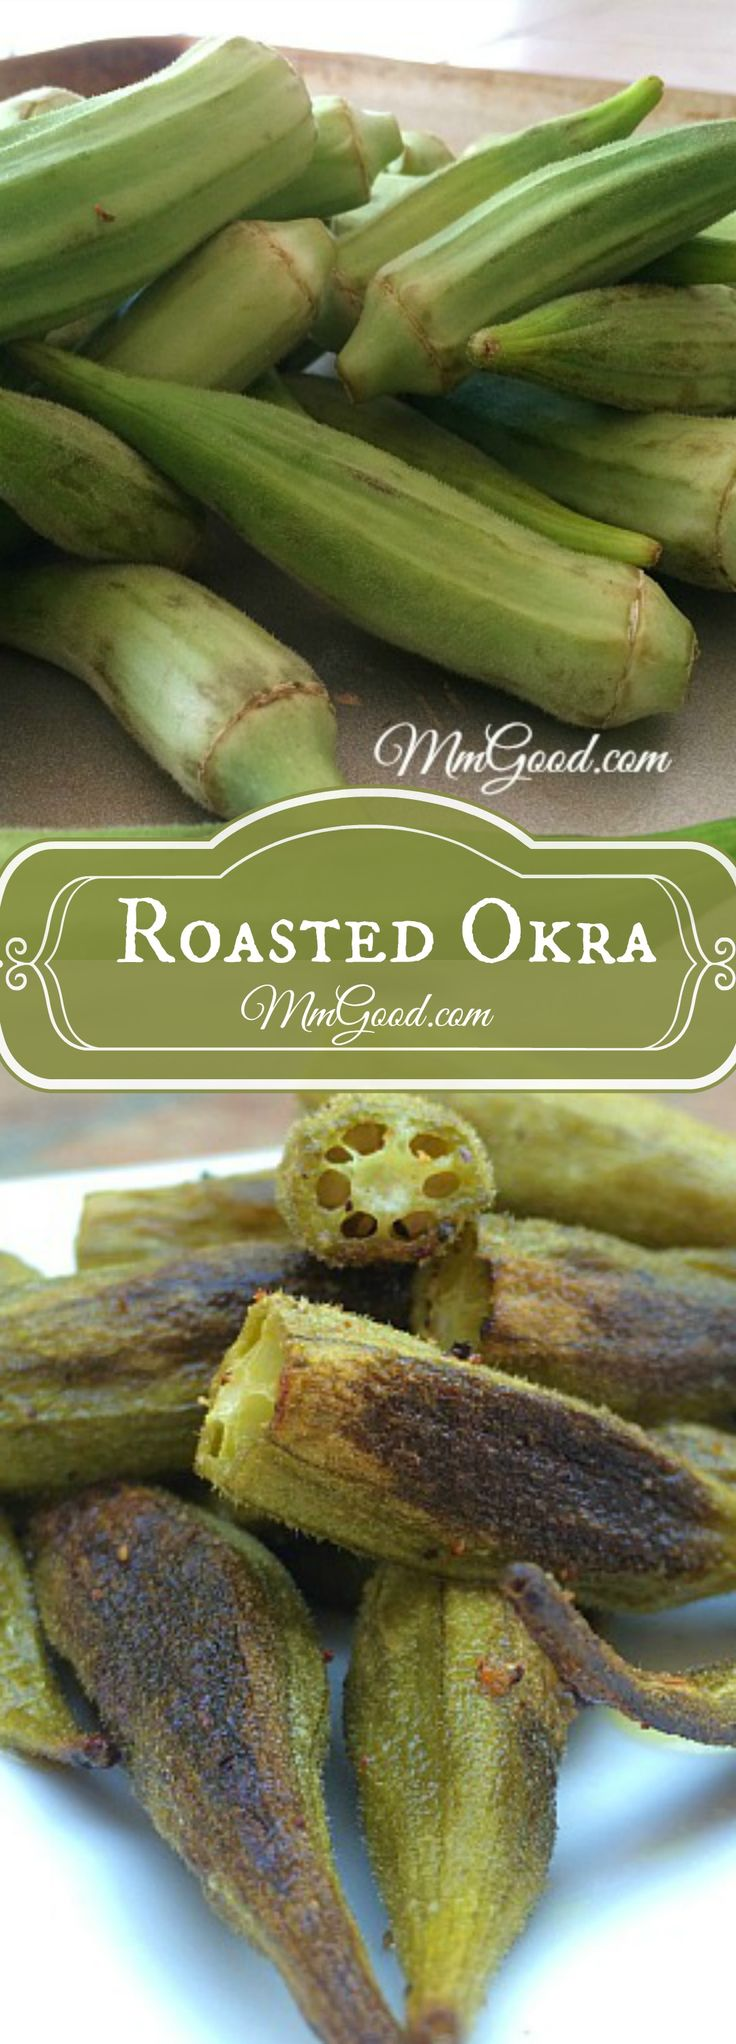 Okra does not need to be fried to taste delicious!  Bring out the sweetness of this vegetable by roasting it and surprise your family with a new vegetable that is healthy in fiber, this is a great, easy recipe for anyone to try | www.MmGood.com